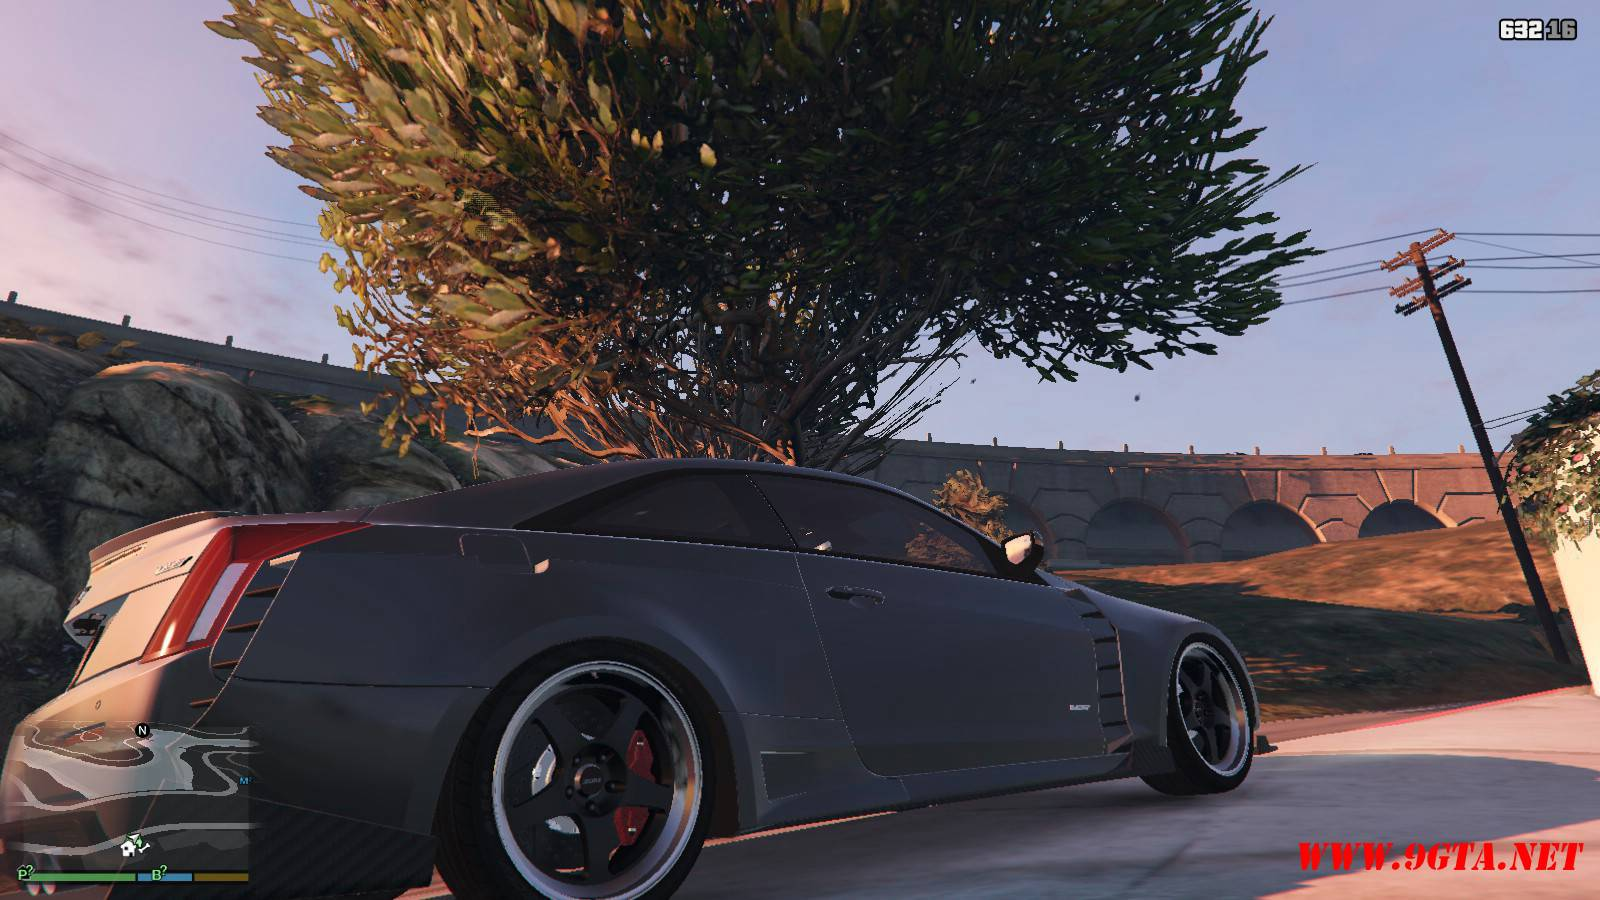 2016 Cadillac ATS-V Forza Edition Mod For GTA5 (6)